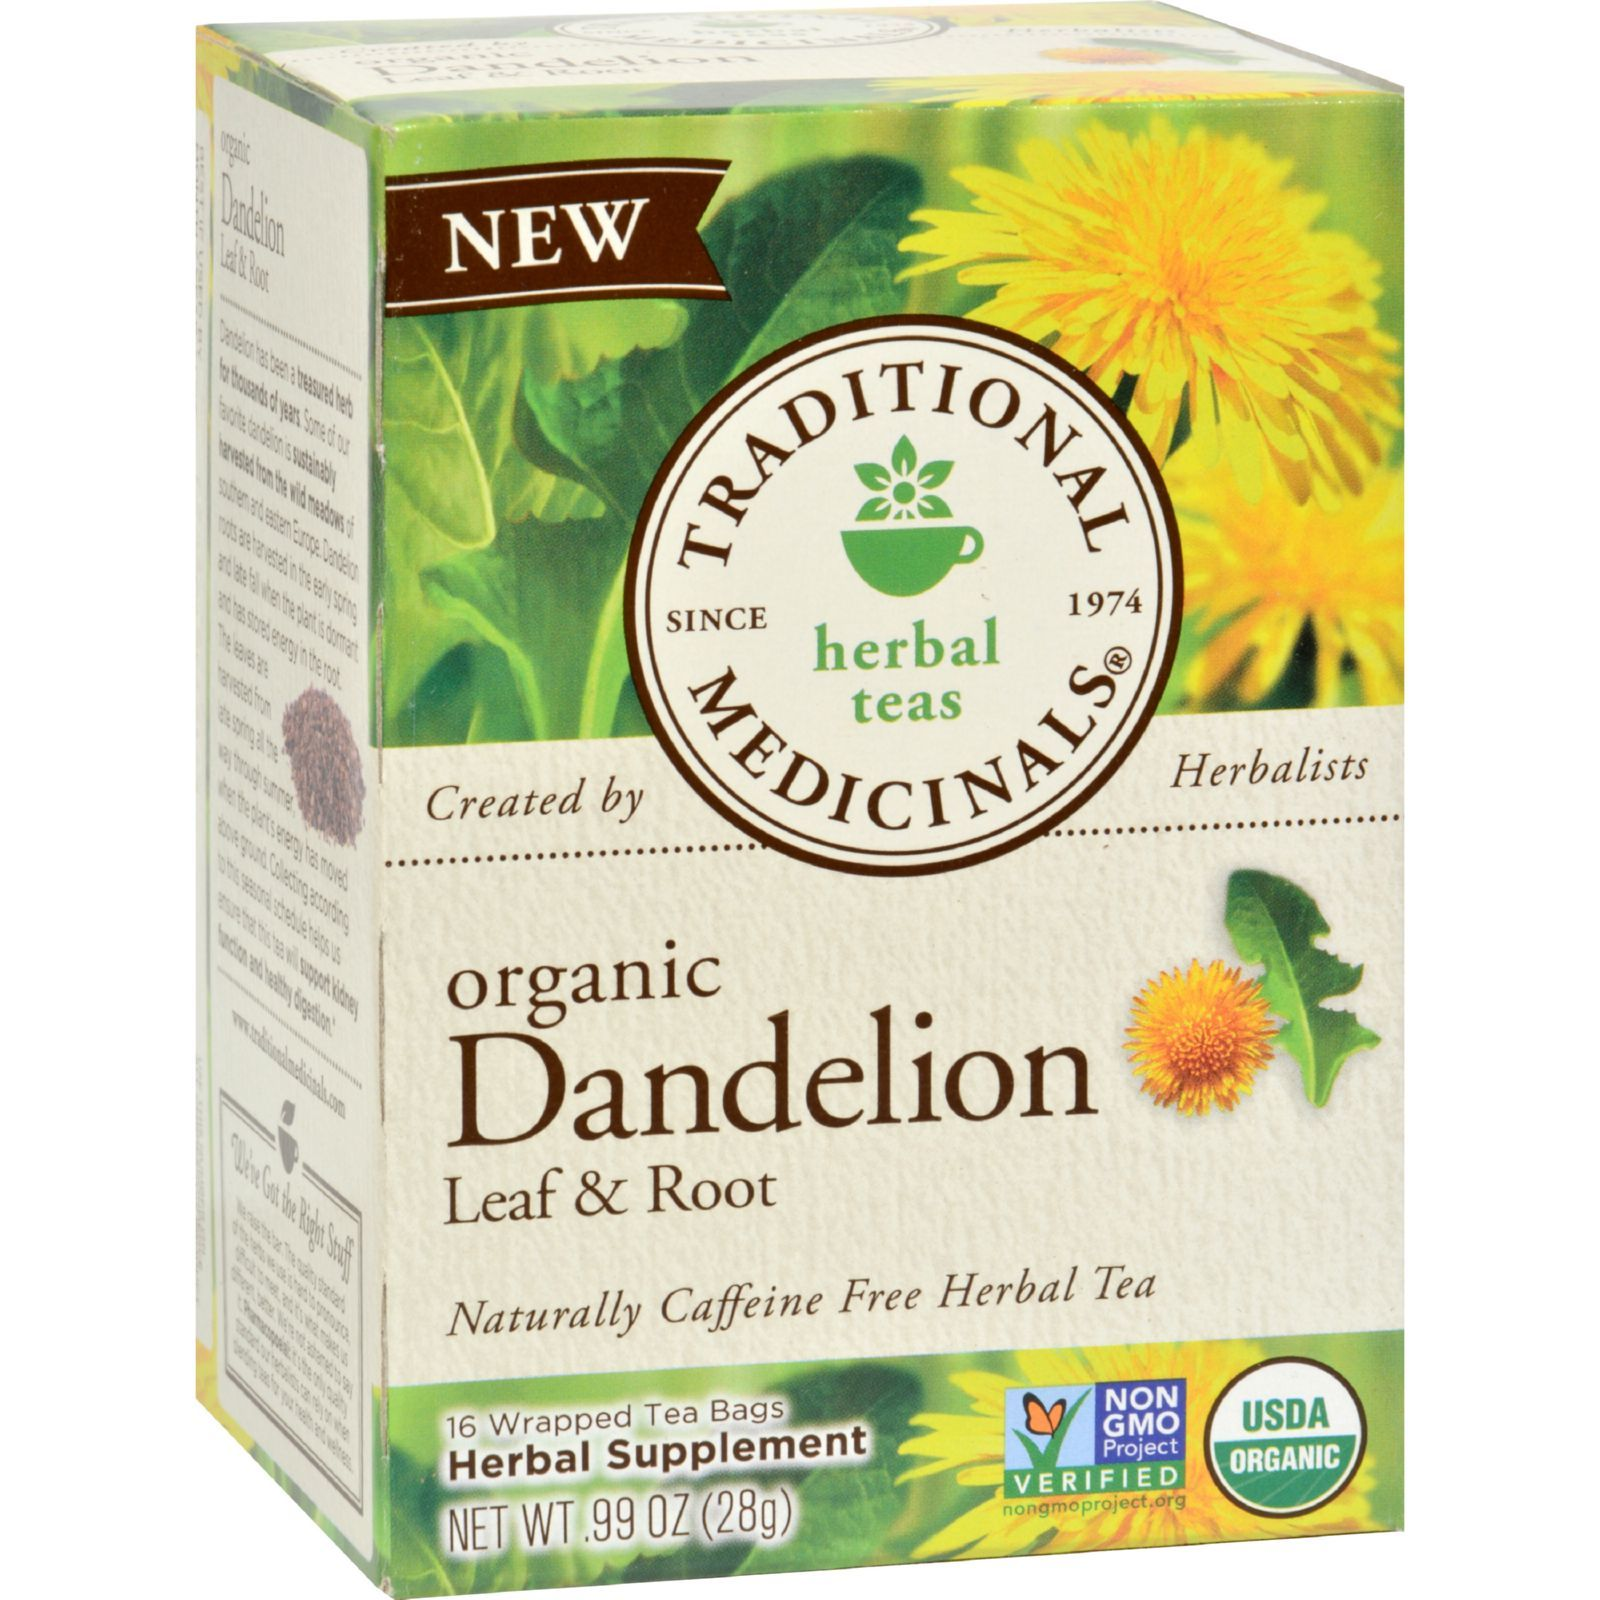 Traditional Medicinals Tea - Organc - Hrbl - Dndln Leaf Rt - 16 ct - 1 Case